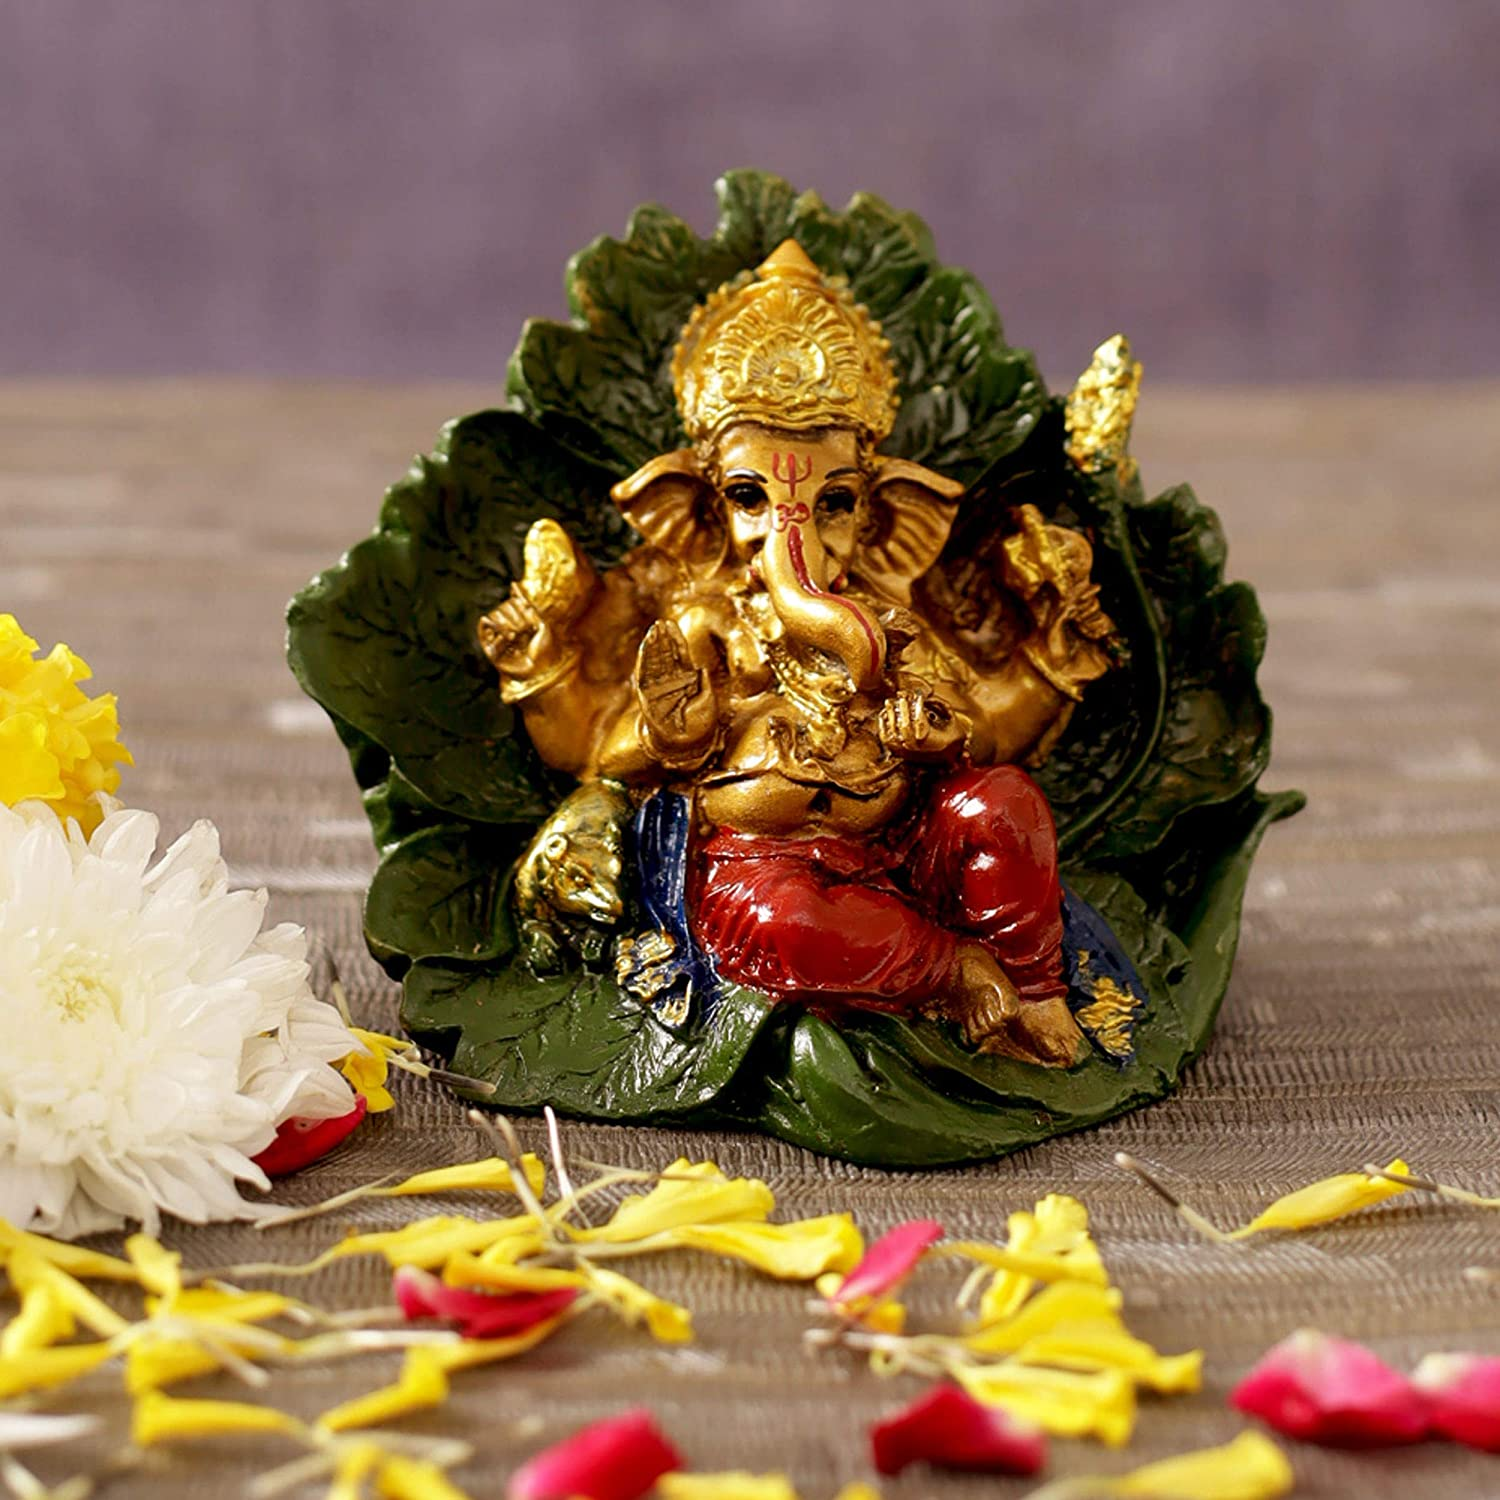 TIED RIBBONS Ganesha Idol for Home Decor Mandir Table Desktop Table Decoration - Ganesh Idol for Gift